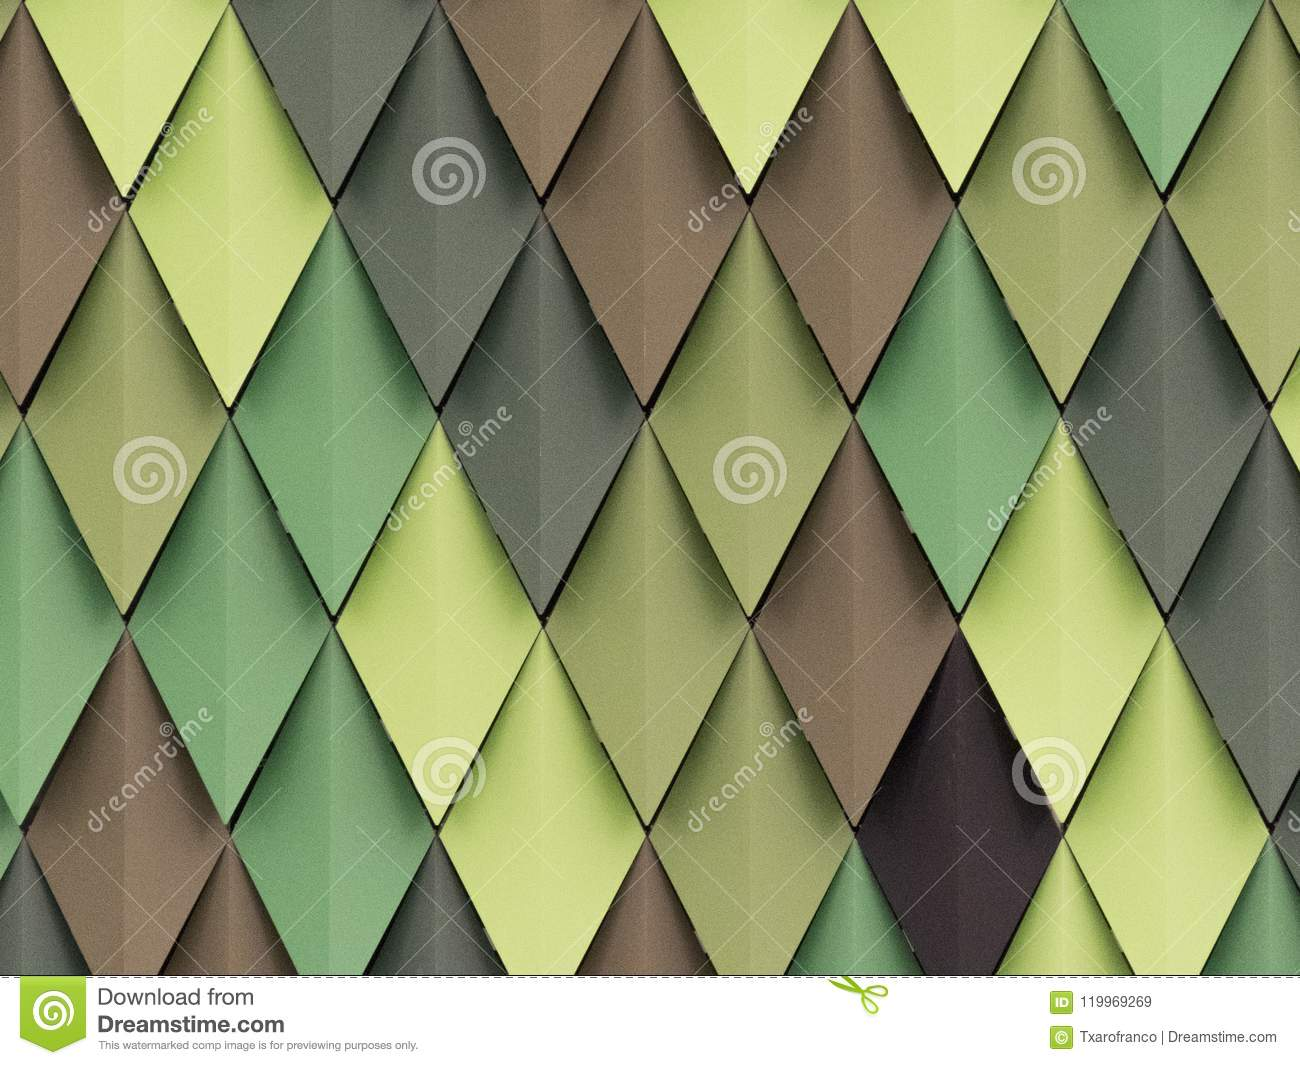 Rhombus in different shades of green and brown in the facade